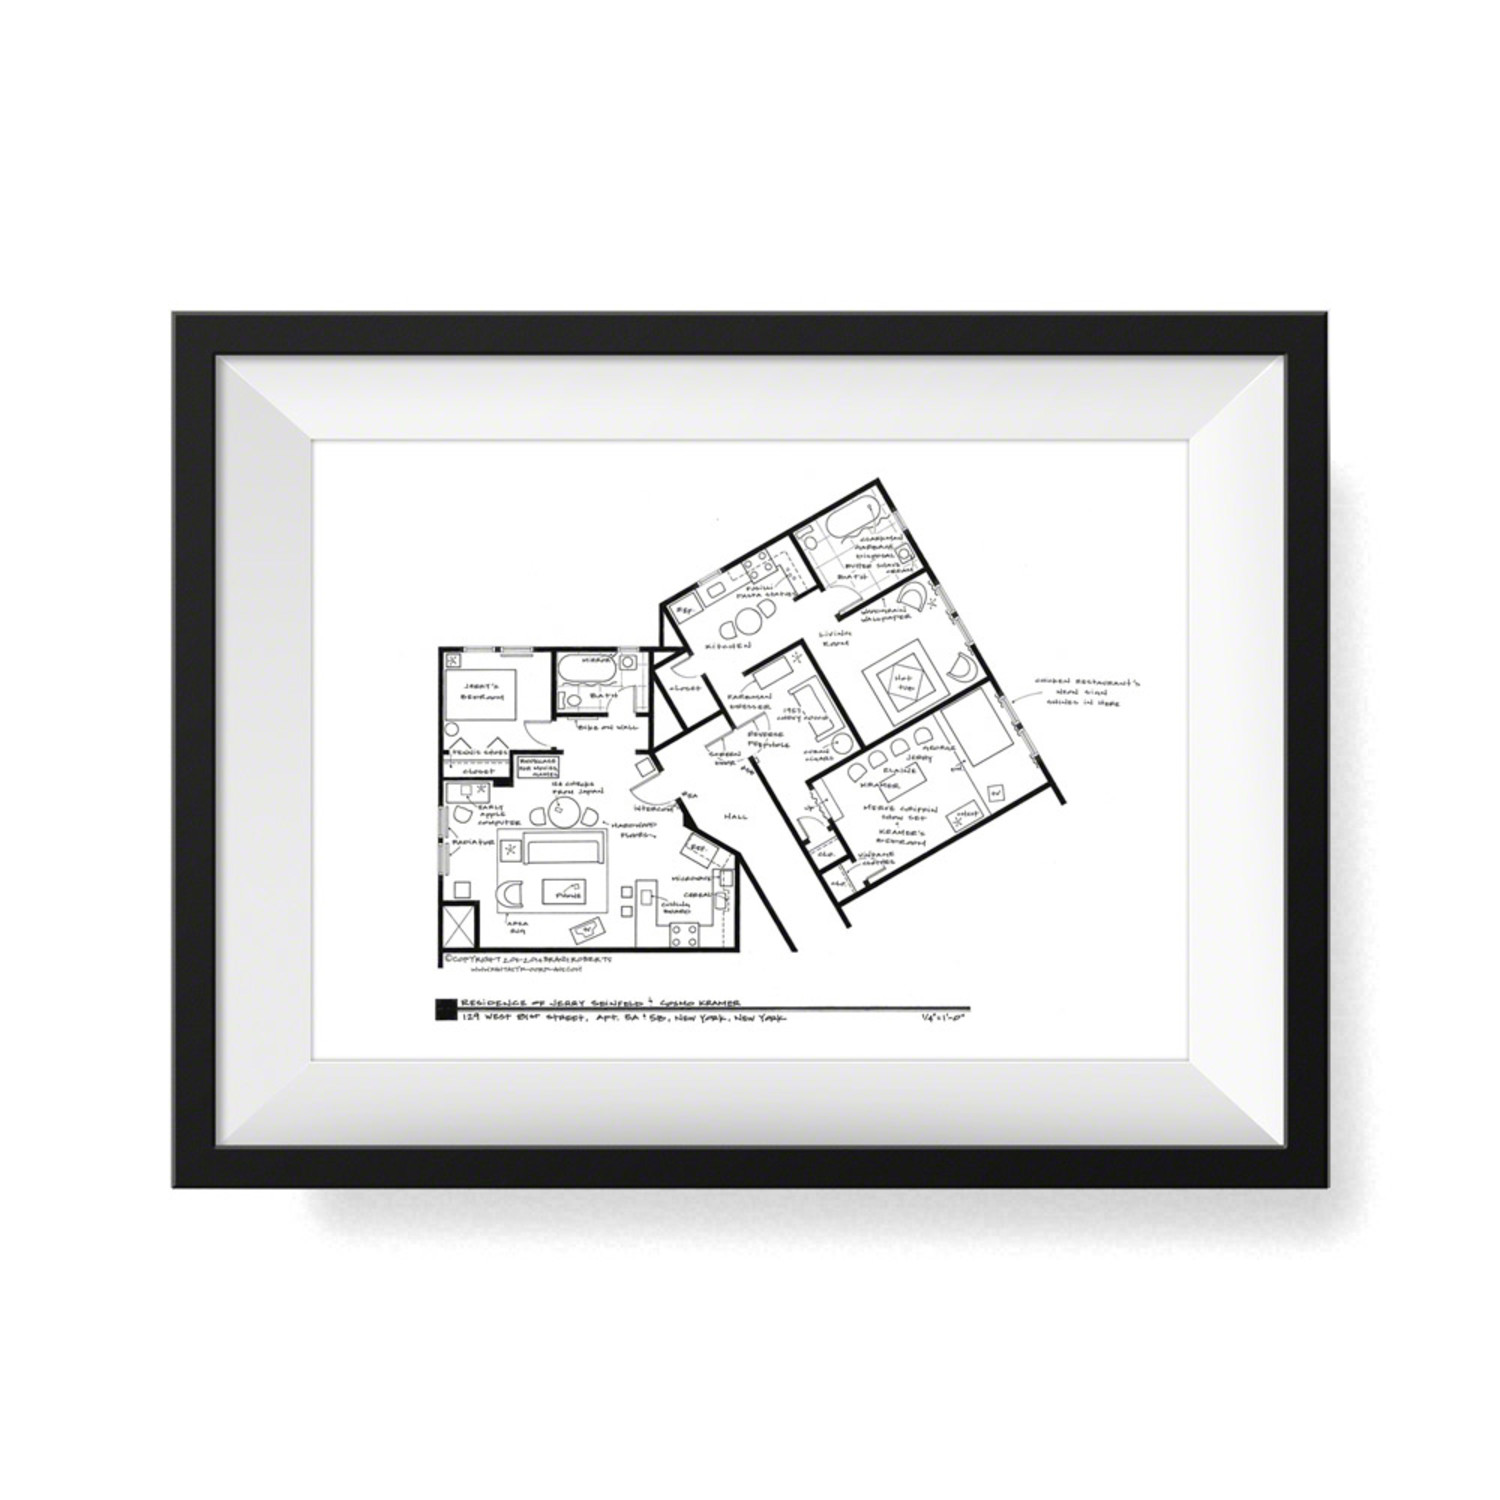 Seinfeld Kramer Apartment Fantasy Floorplans Touch